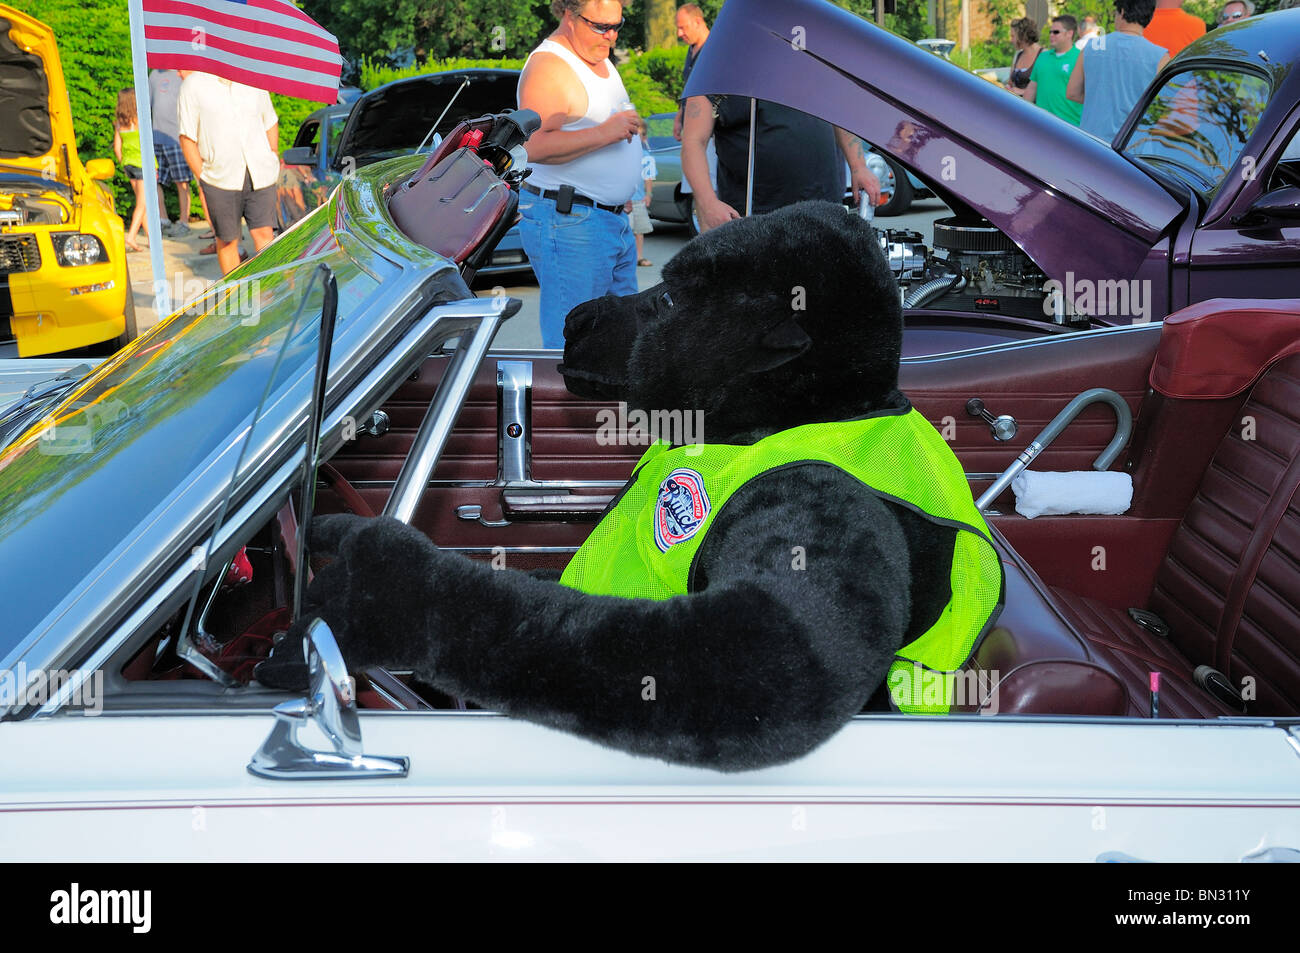 Black bear driving Buick Convertible at Cruise Nights Car Show in small town America. - Stock Image